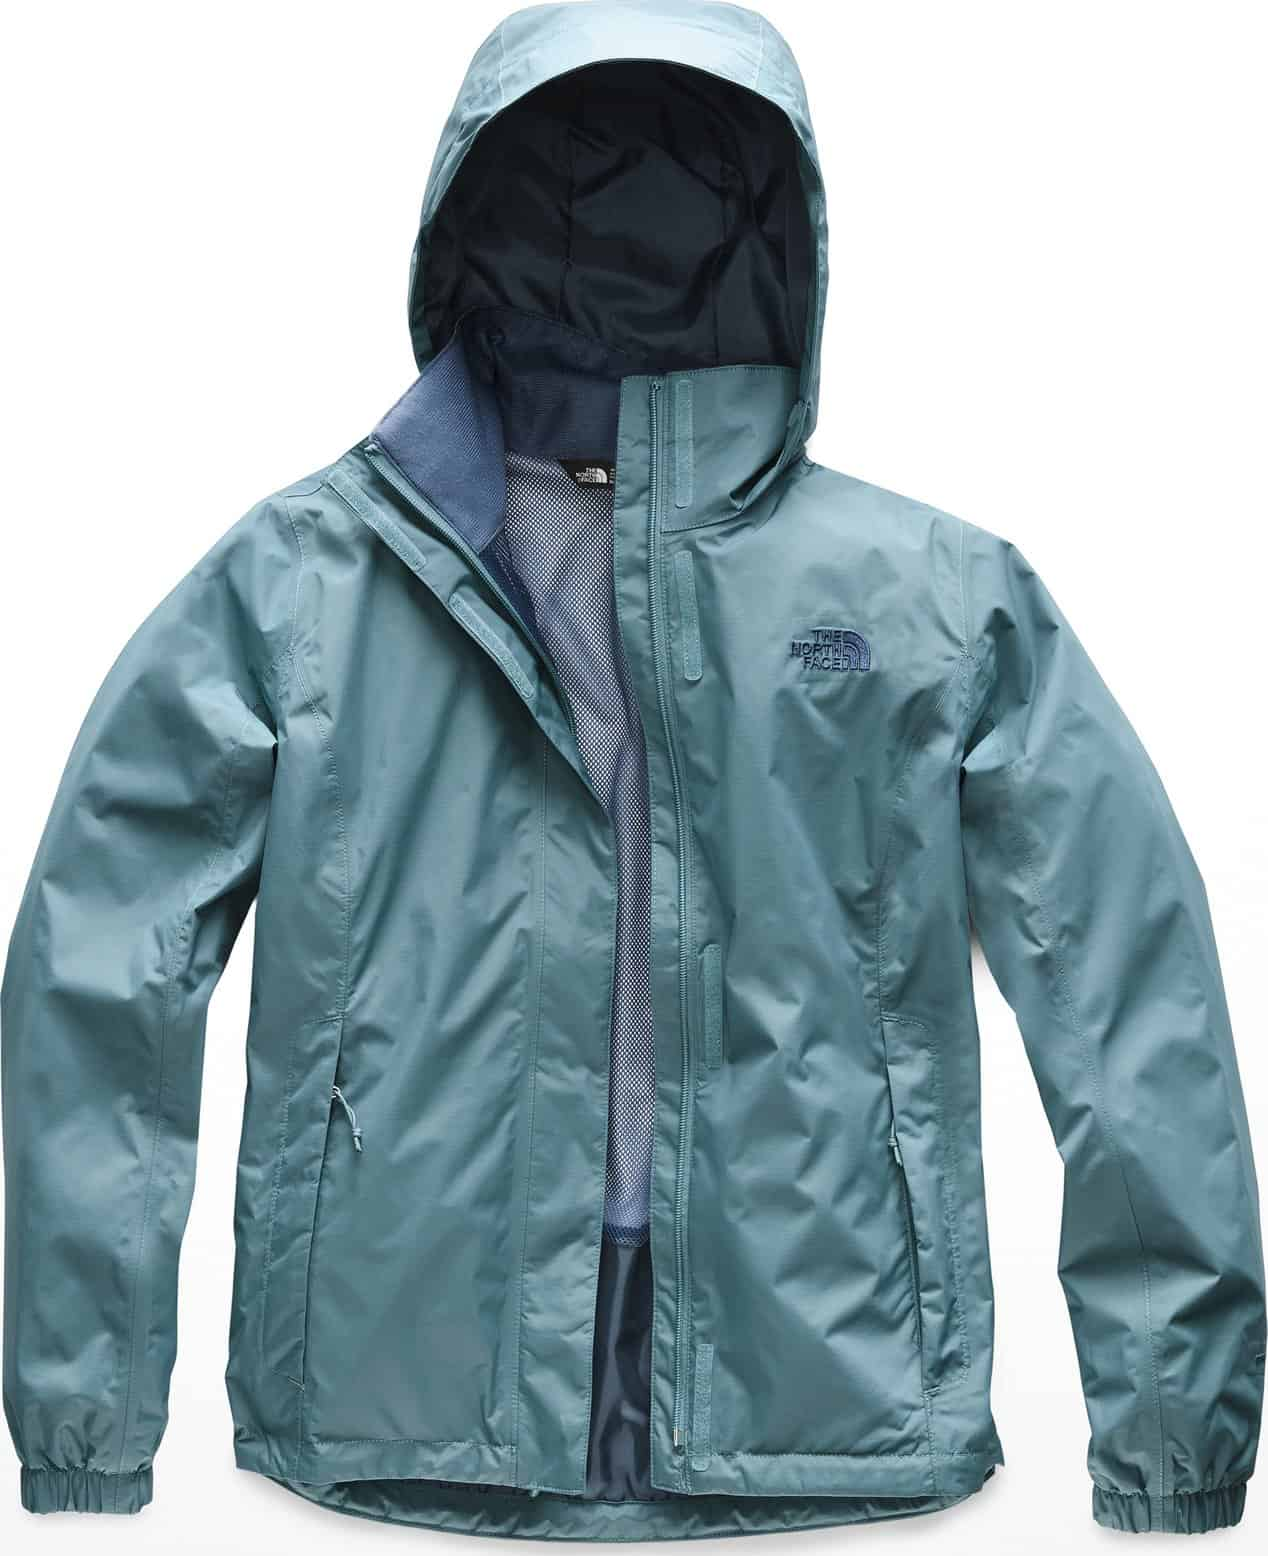 8c726a797 How to Find the Best Rain Jacket | Altitude Blog